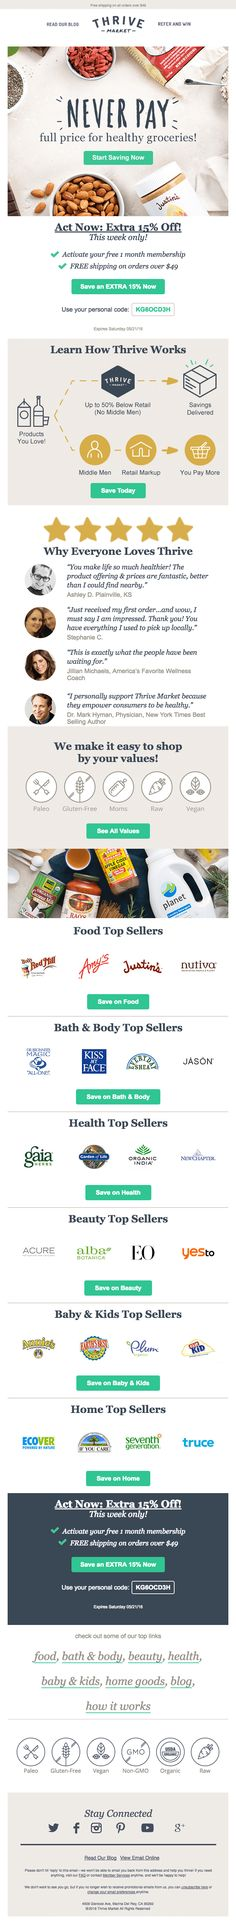 20 Best Email Marketing Swipes images in 2018 | Email Marketing